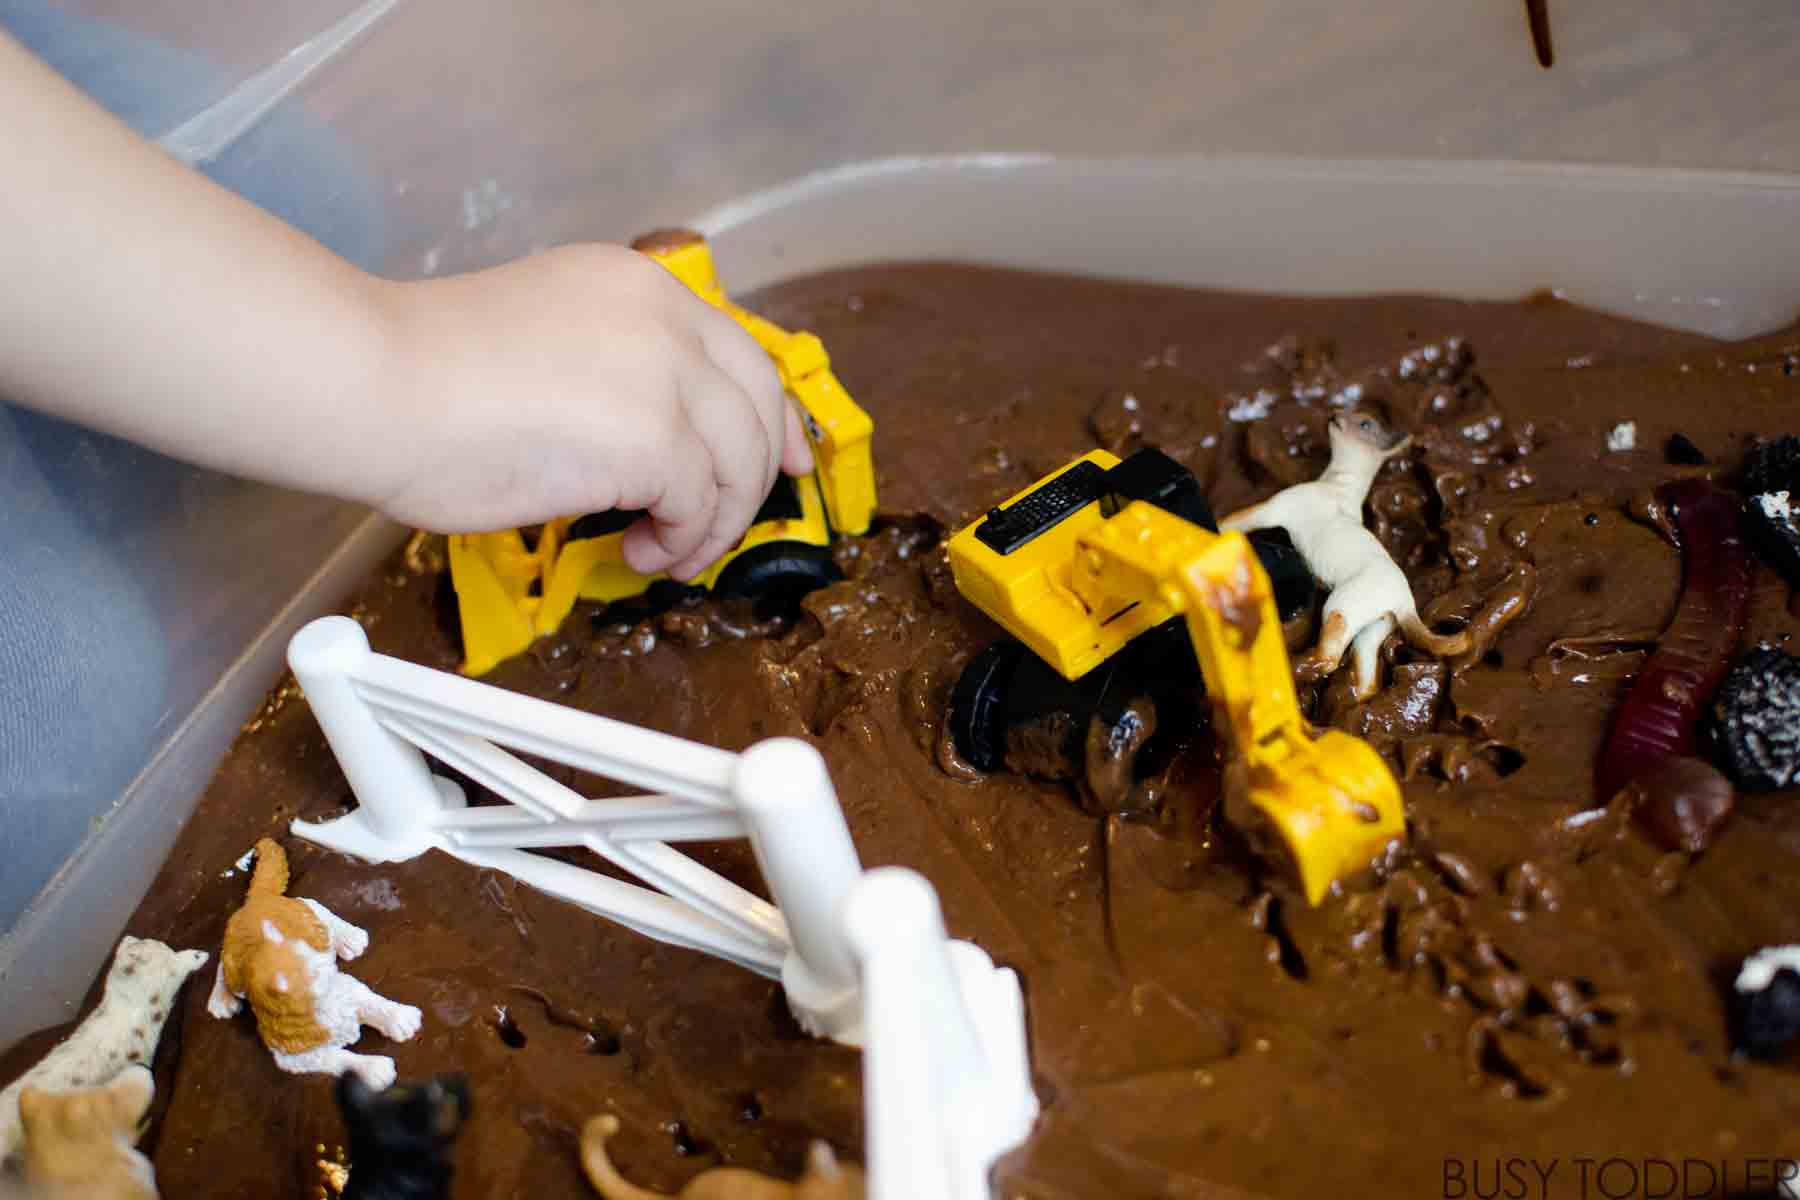 EDIBLE MUD: Have some sticky, yummy fun with this easy toddler activity. Make a messy memory with this fun toddler activity. Enjoy a sensory activity with your toddler.